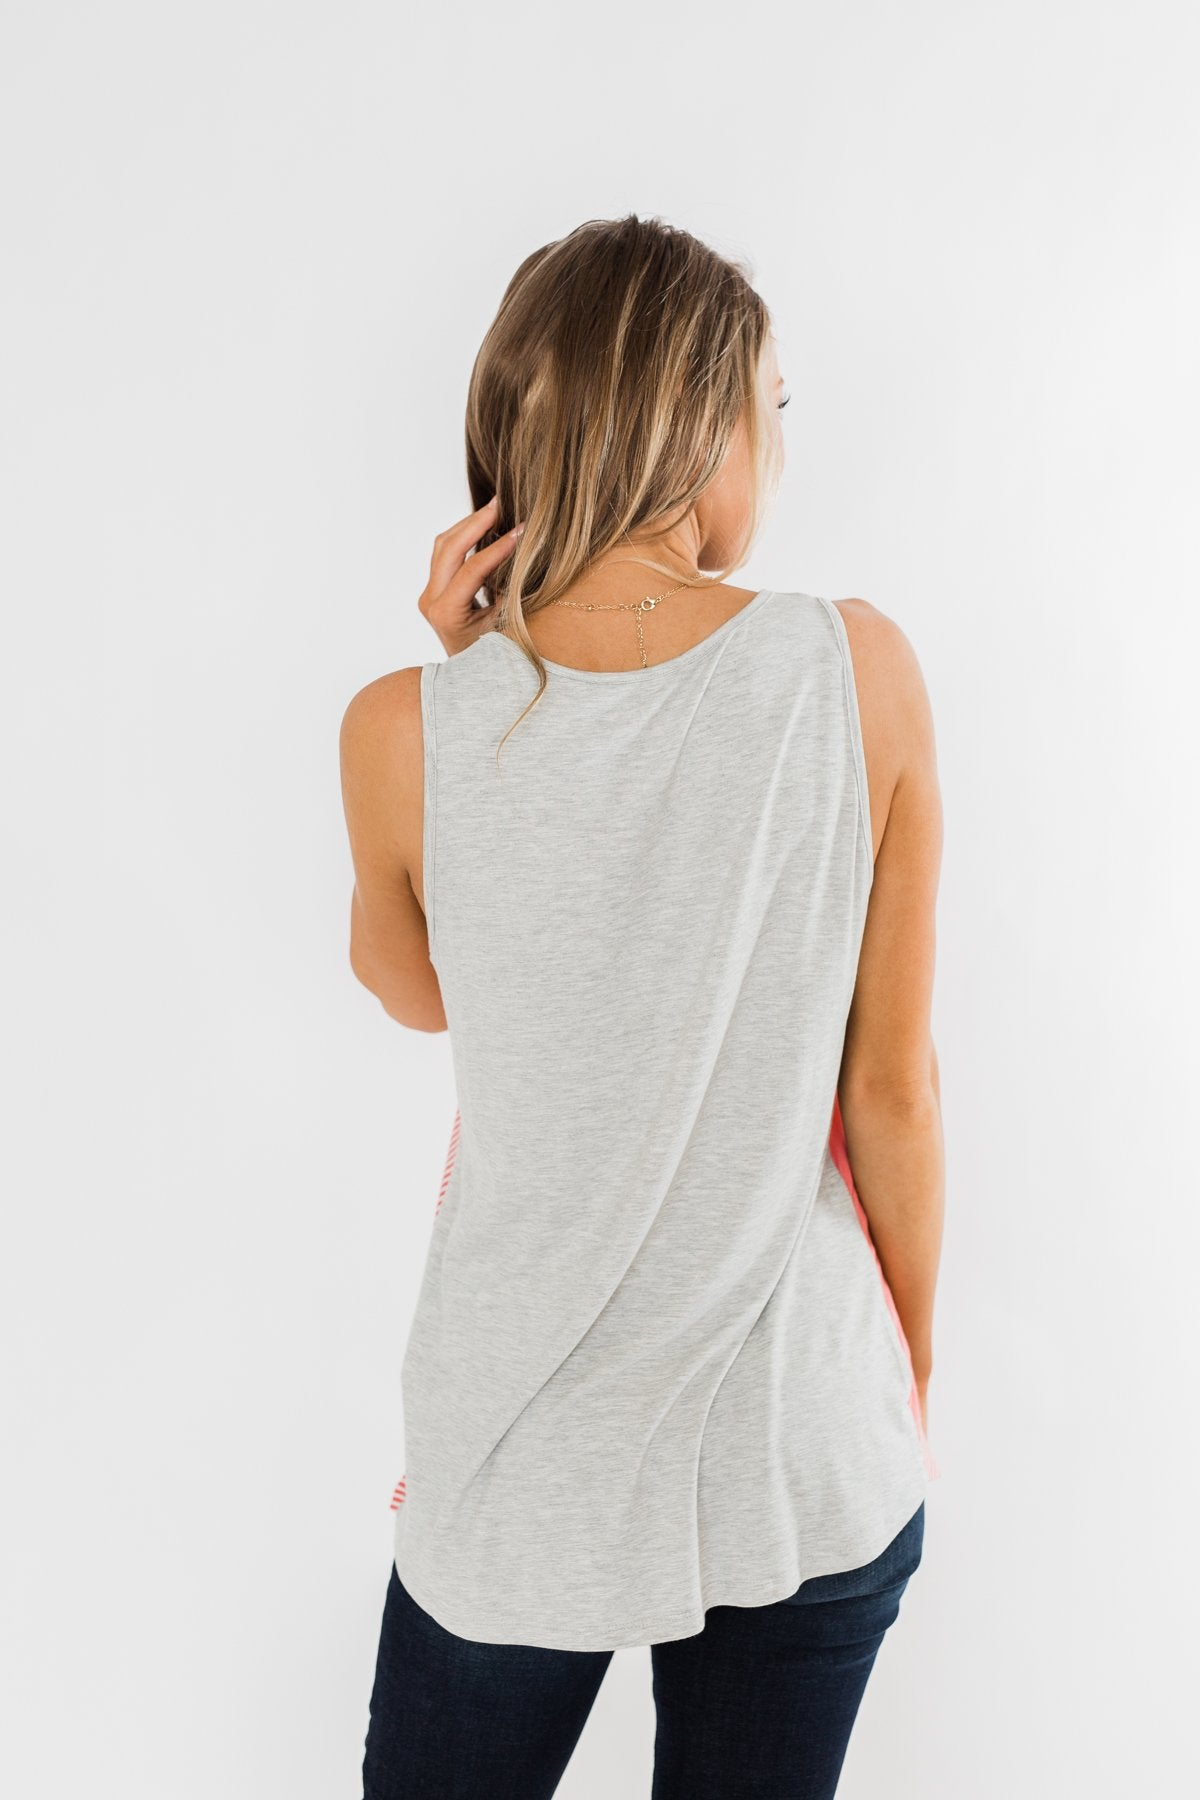 Be Somebody Color Block Tank Top- Grey & Coral